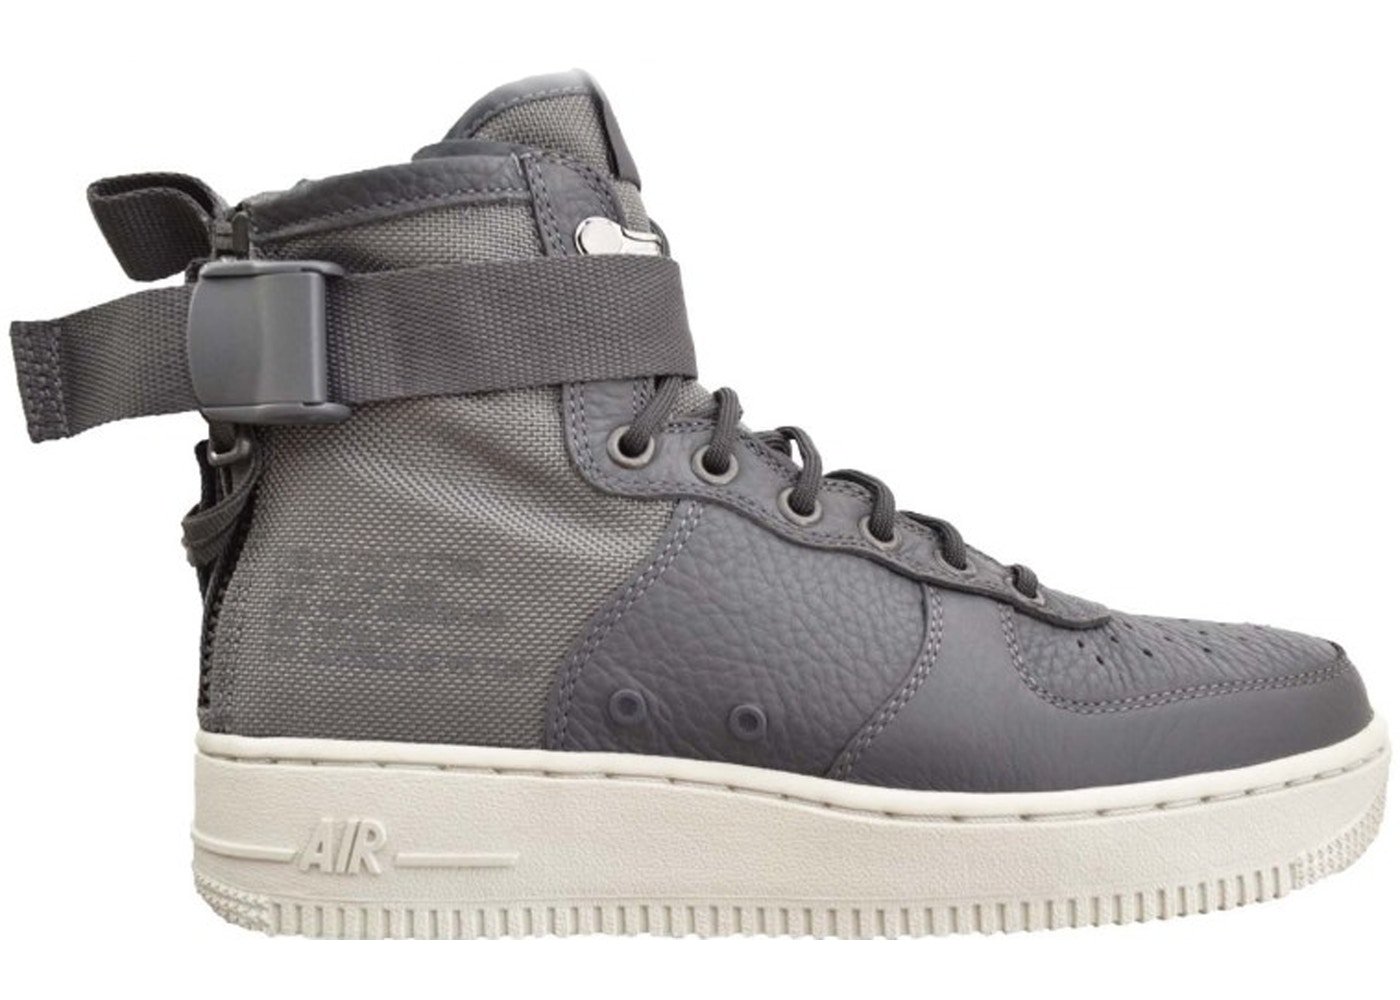 Nike SF Air Force 1 Mid Dark Grey